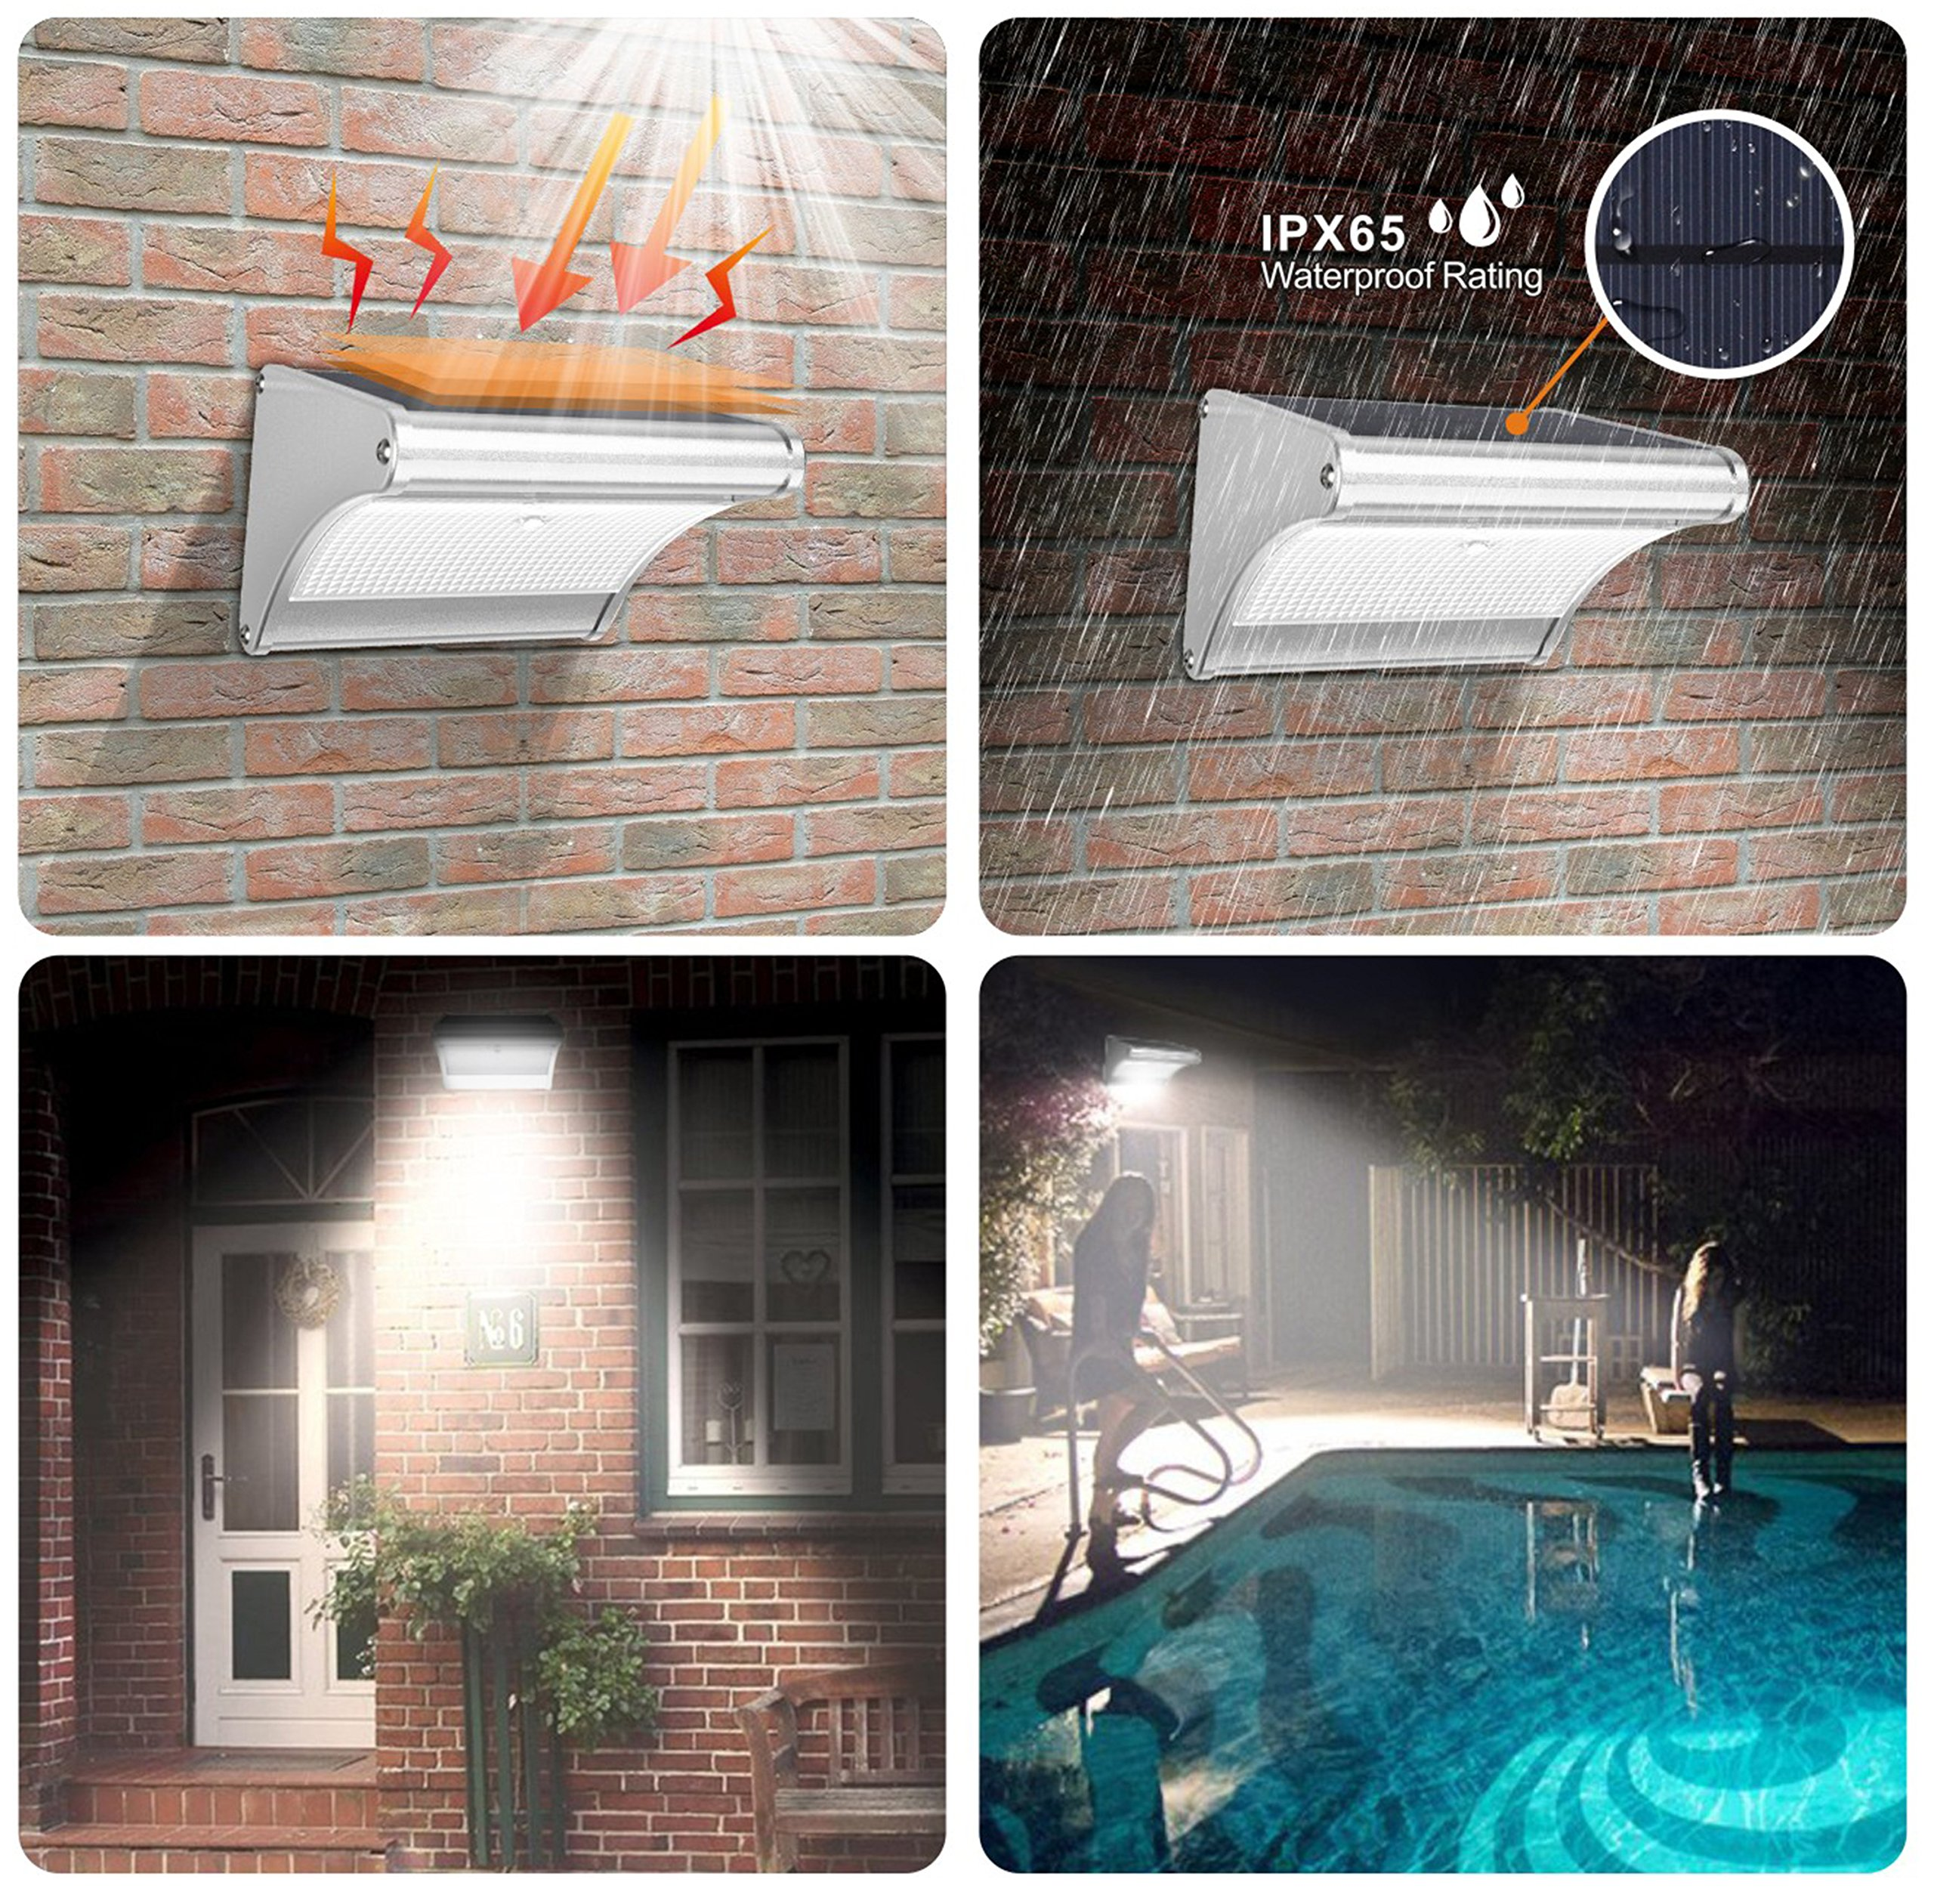 Solar Lights Outdoor Motion Sensor Garden Patio Super Bright Lighting Wireless Radar Activated Powered Aluminum Alloy 24 LED Security Waterproof Wall Landscape Fence Yard Path Driveway Garage Porch